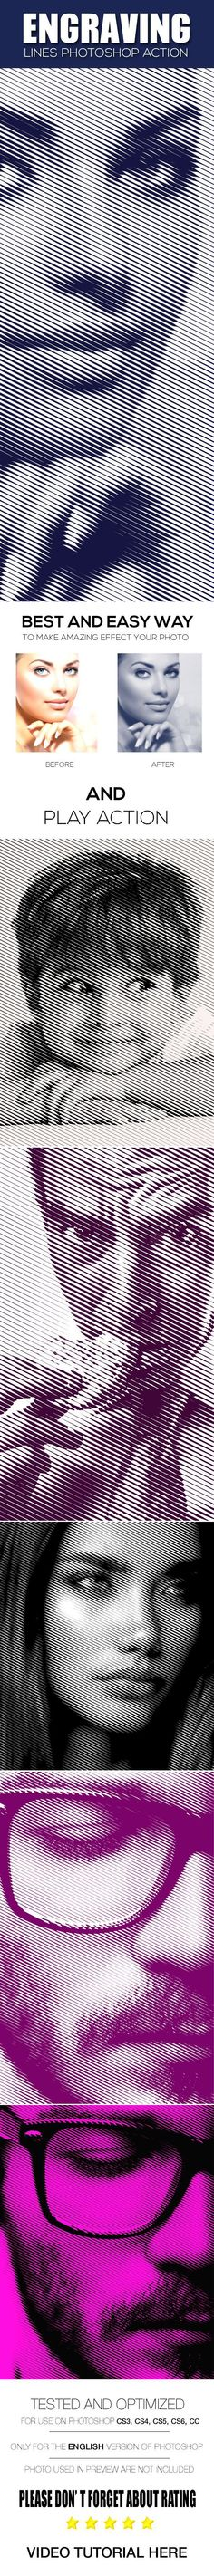 Engraving Lines #Photoshop Action - #Photo Effects #Actions Download here: https://graphicriver.net/item/engraving-lines-photoshop-action/19577968?ref=alena994